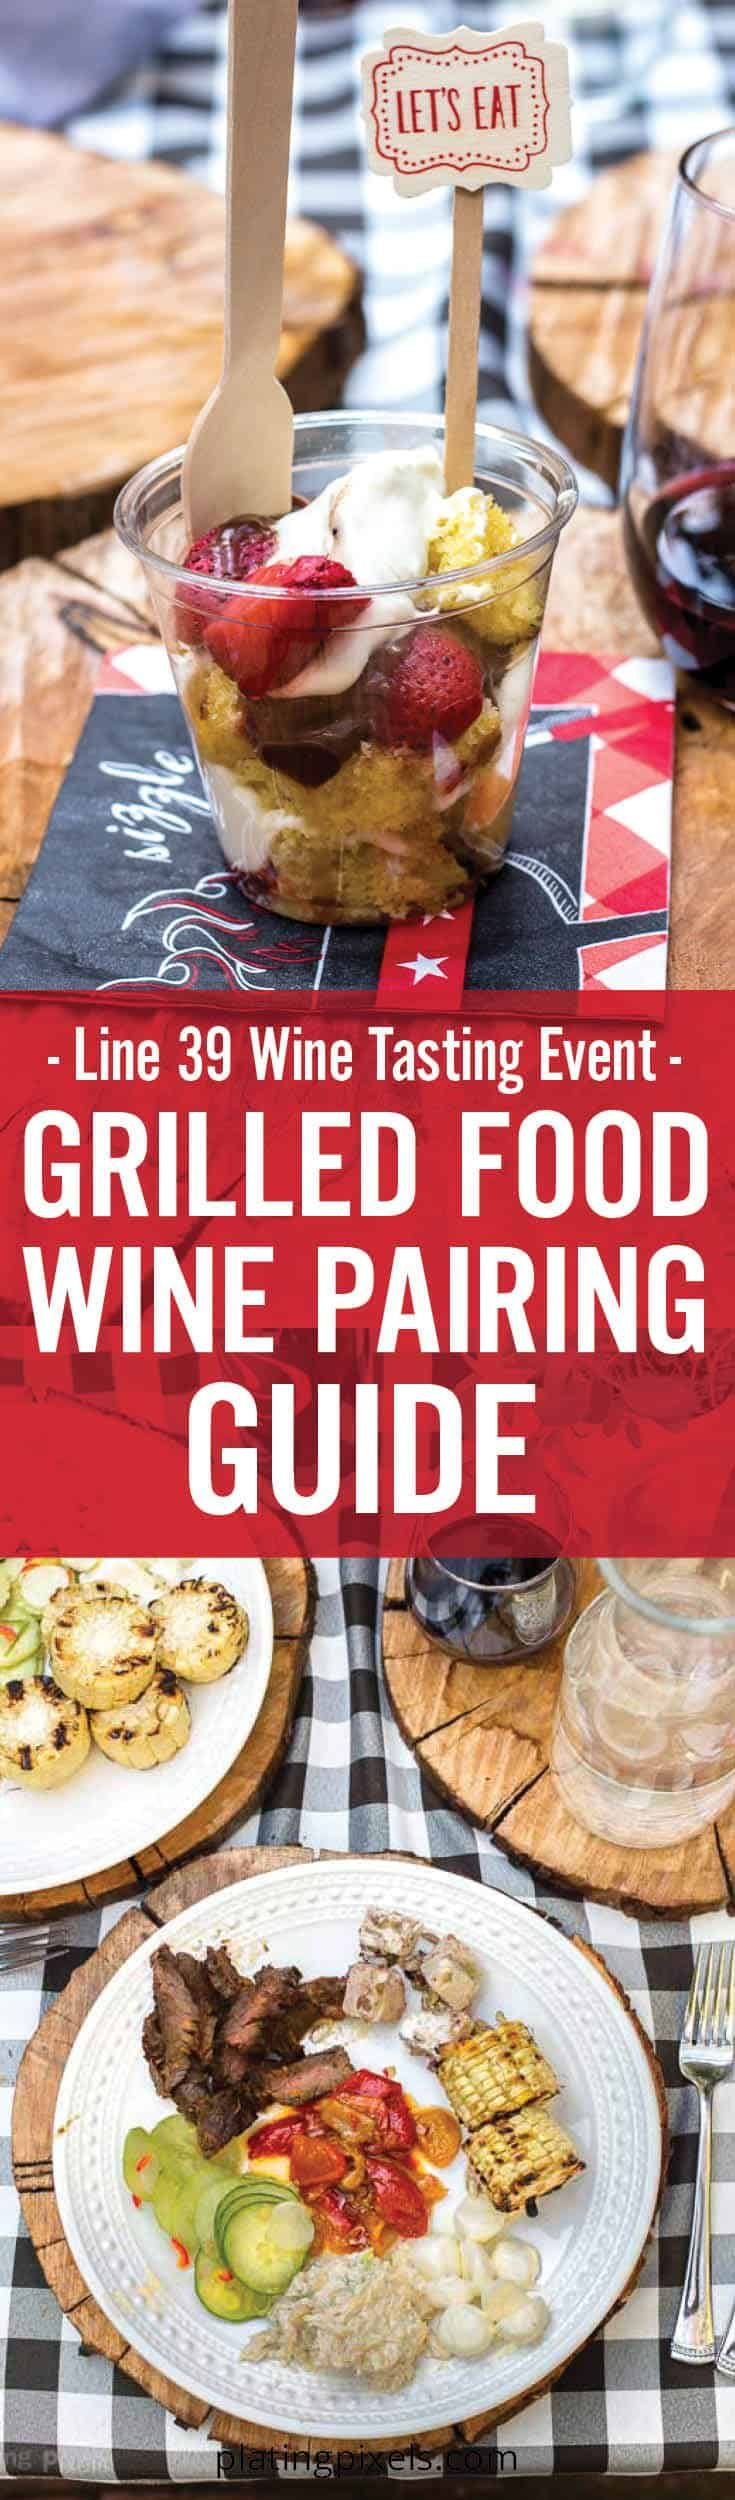 Line 39 Wine Tasting Event In San Francisco And Grilled Food Wine Pairing Wine Recipes Wine Food Pairing Food